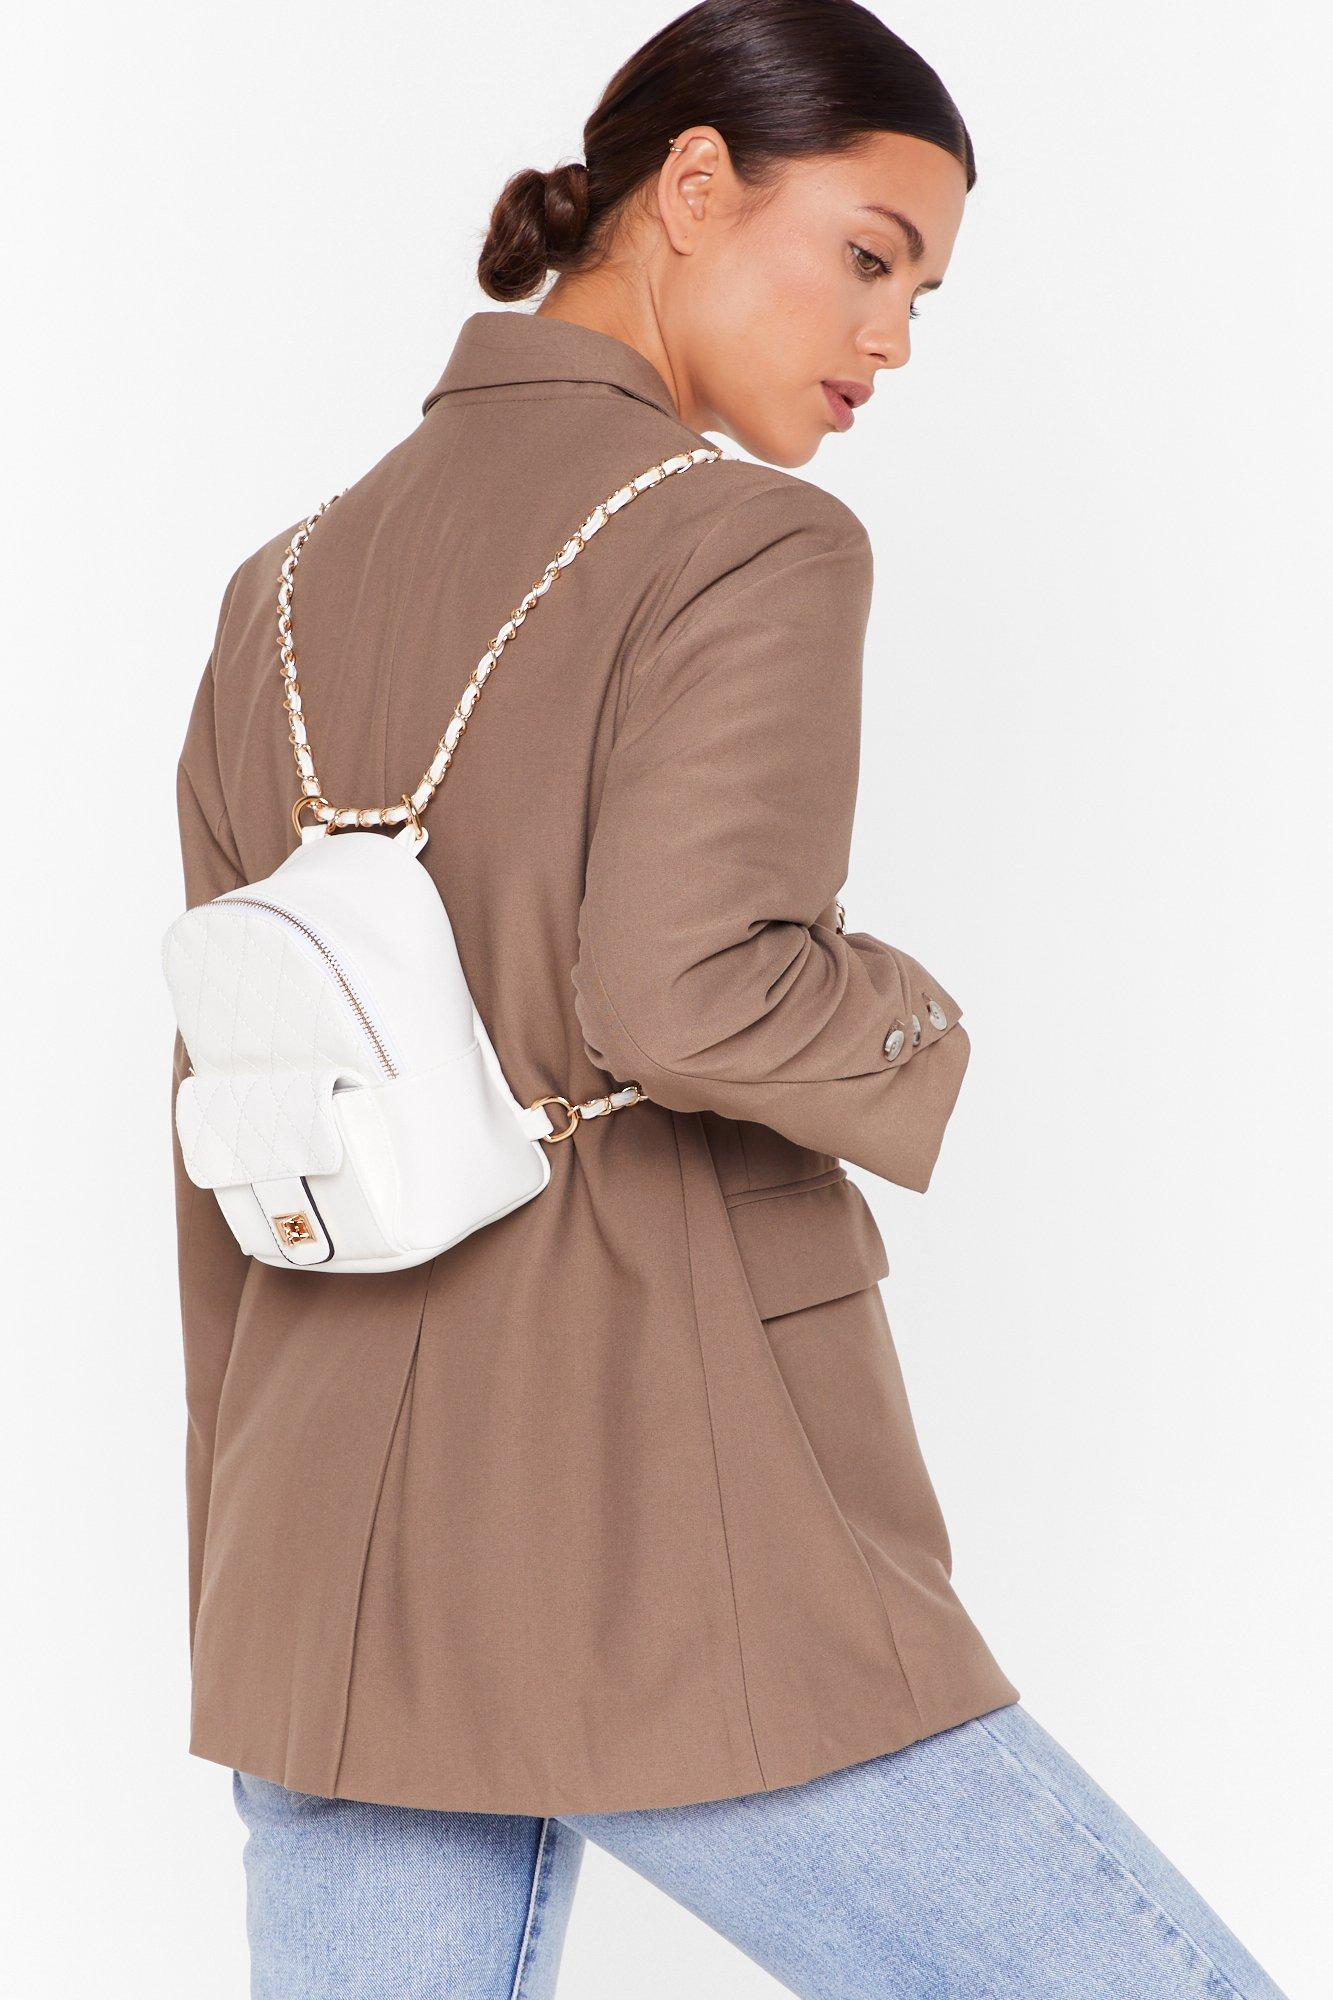 Image of WANT No Quilt Faux Leather Backpack